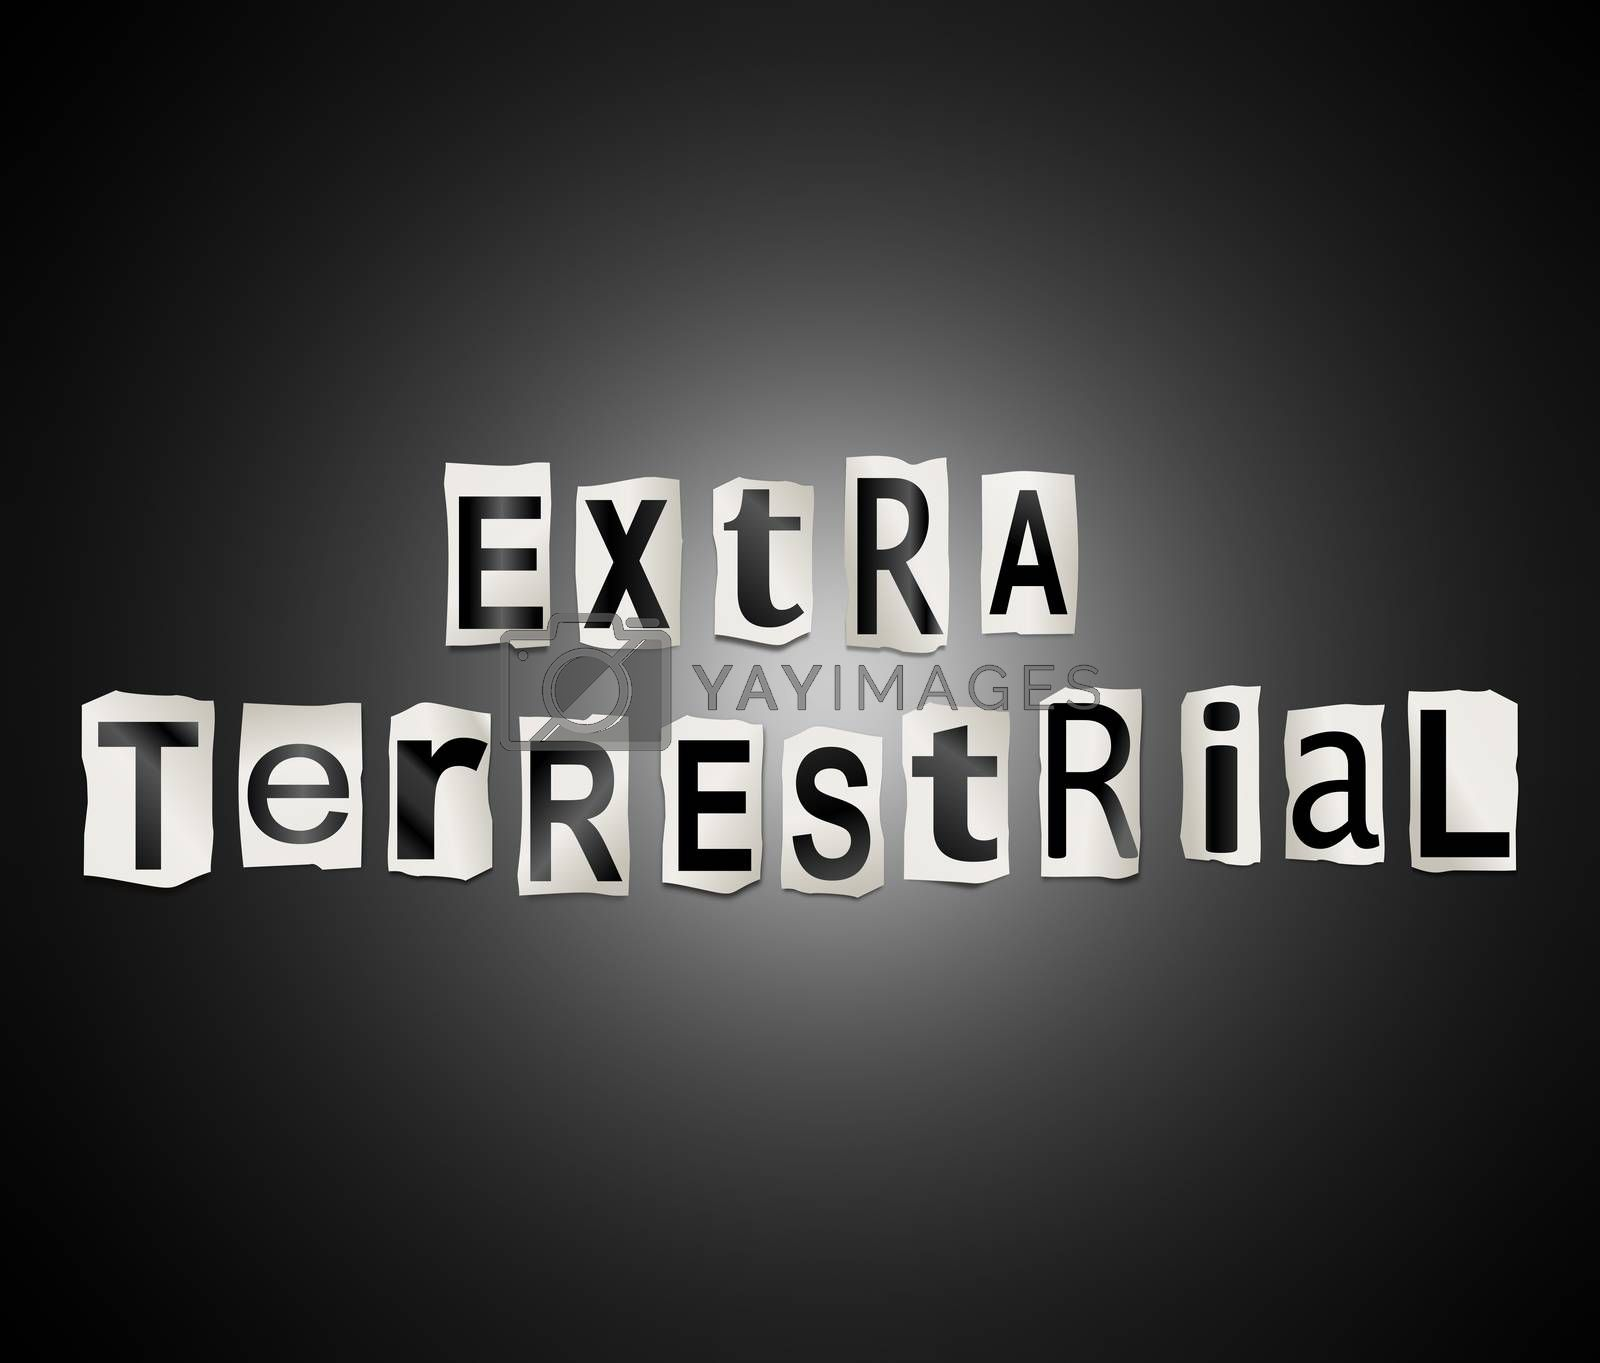 Illustration depicting a set of cut out printed letters arranged to form the words extra terrestrial.